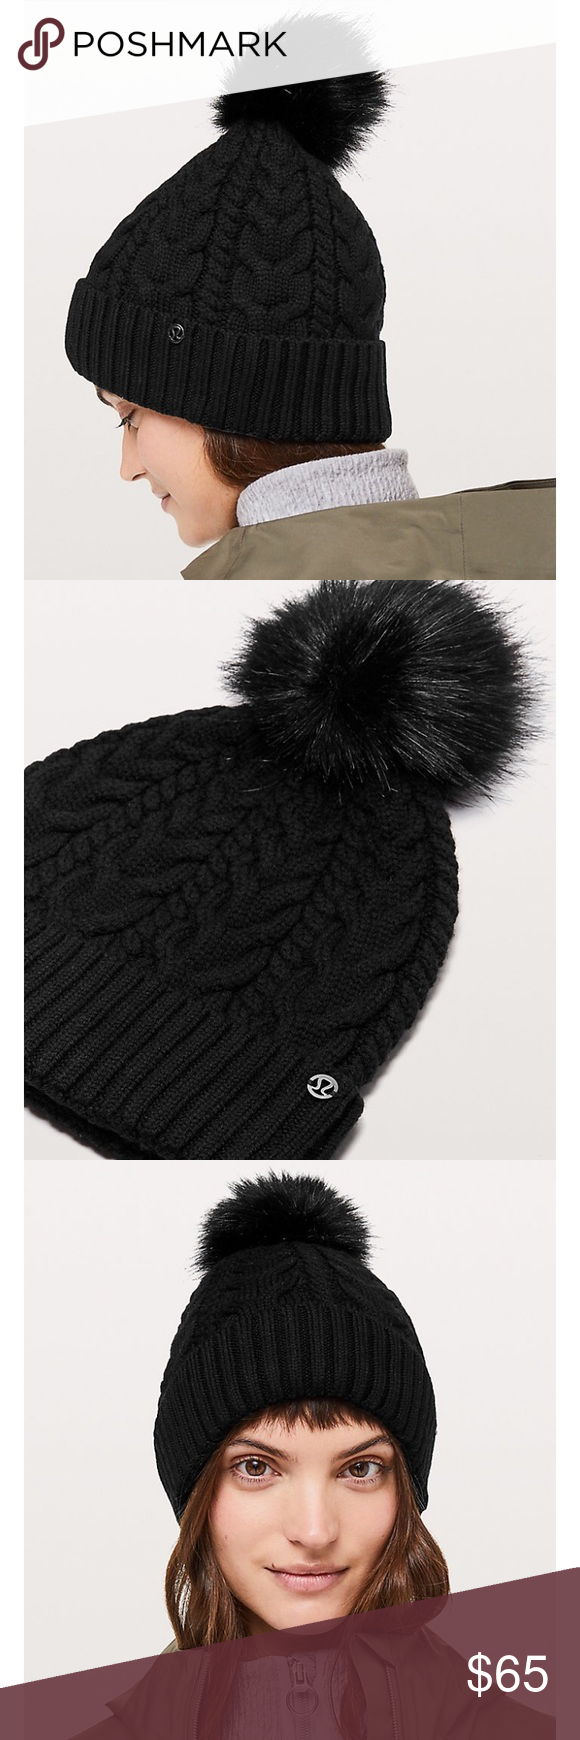 e3bf7d307a4 Lululemon Twisted Bliss Beanie NWT Super cute Twisted Bliss Pom Pom beanie  from lululemon. Super nice and warm cable knit material.